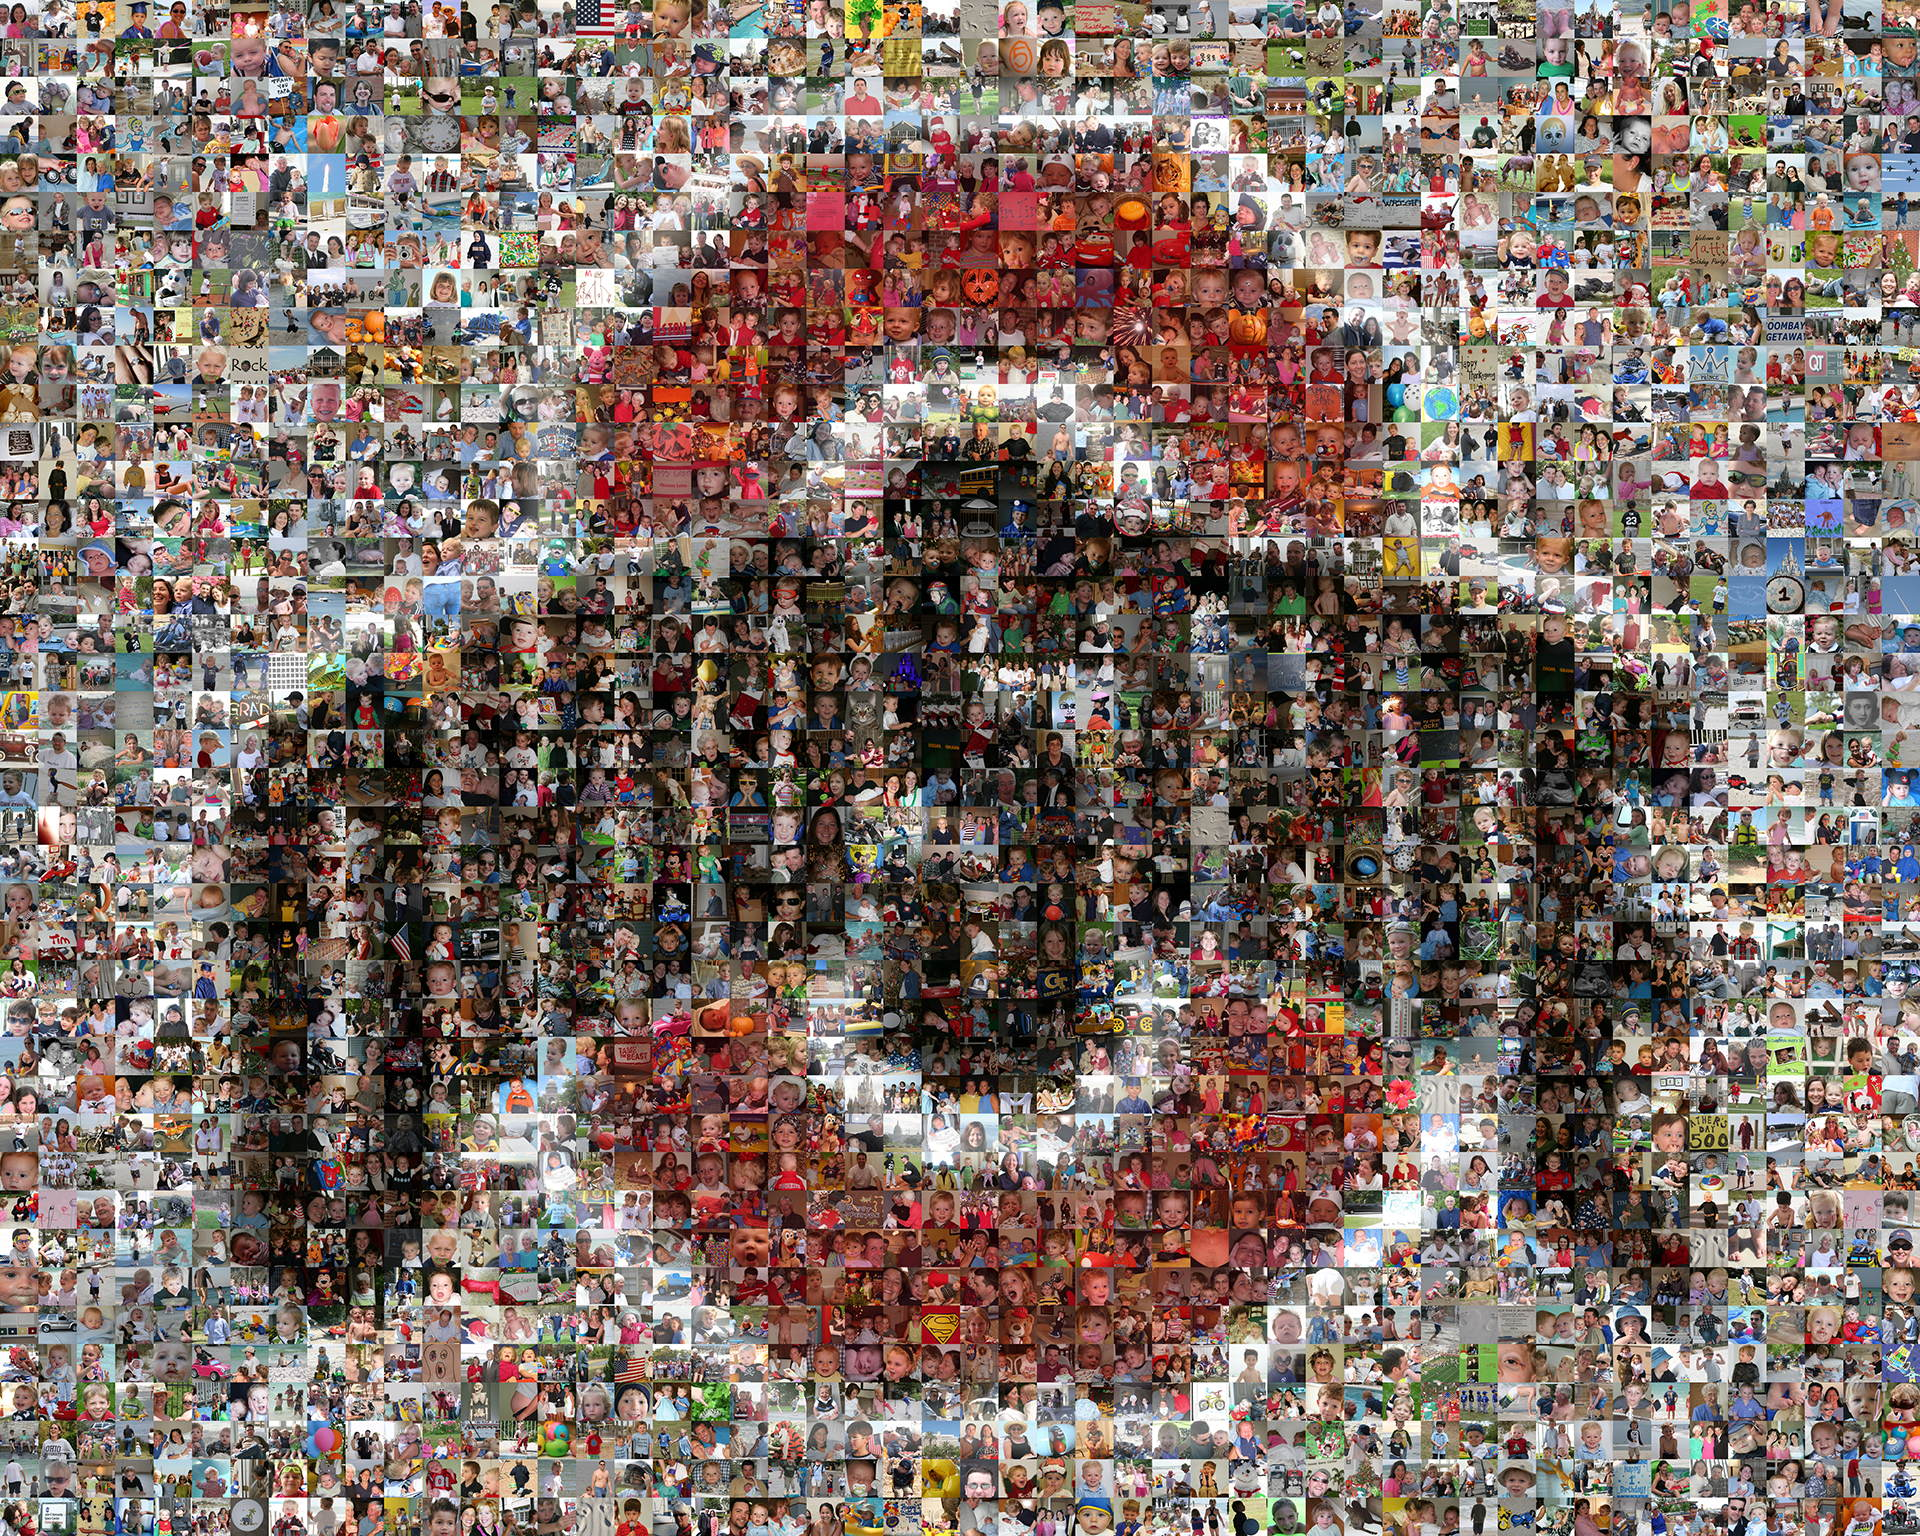 photo mosaic created using over 2,500 user submitted photos